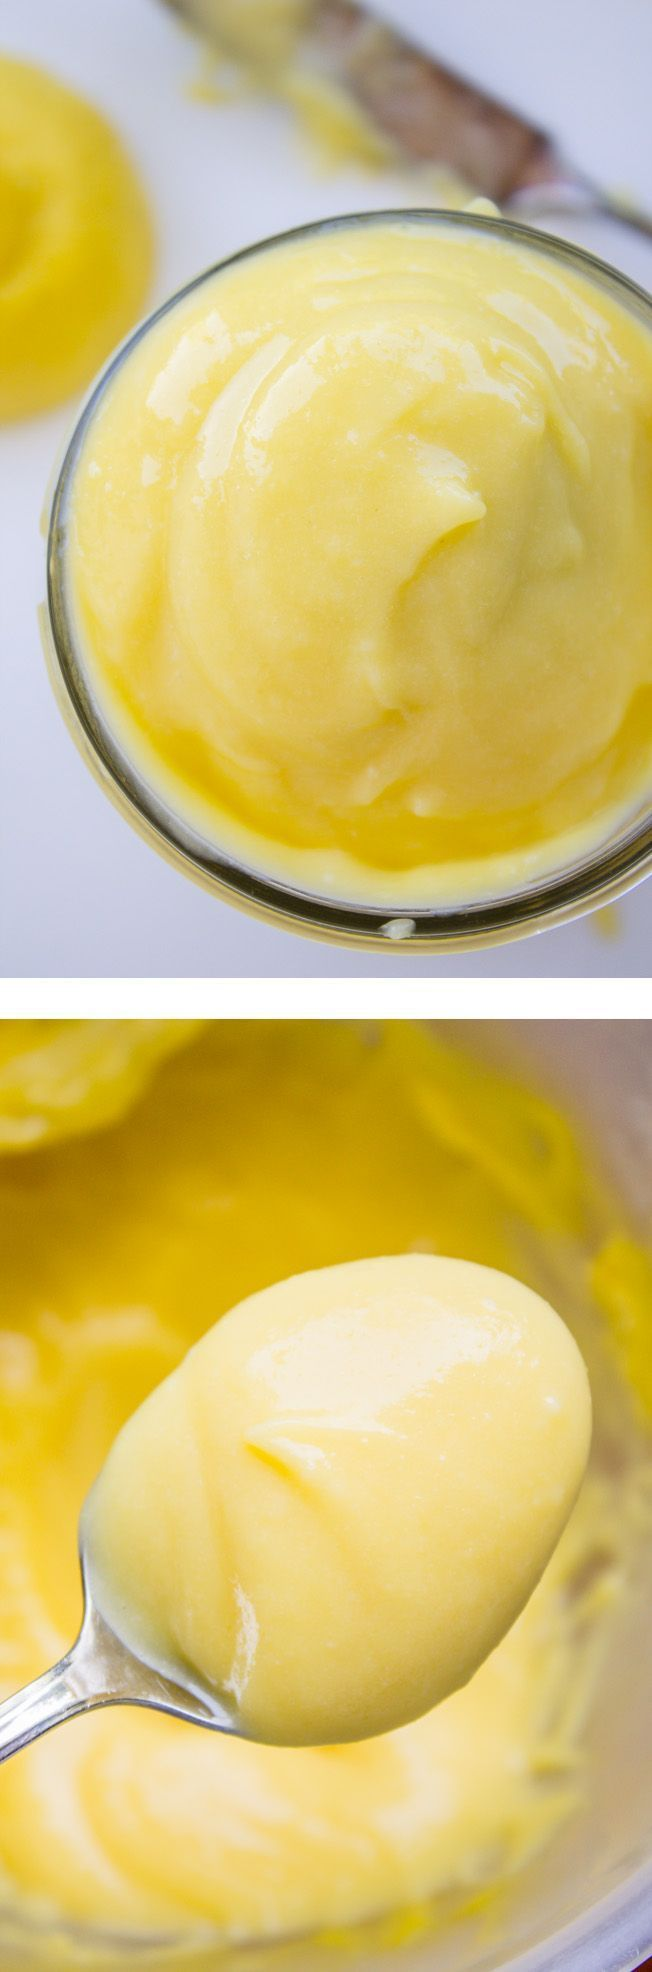 The Best Lemon Curd (Easy!) from The Food Charlatan // Never buy that stuff from the store again! Creamy, tart, and so easy!